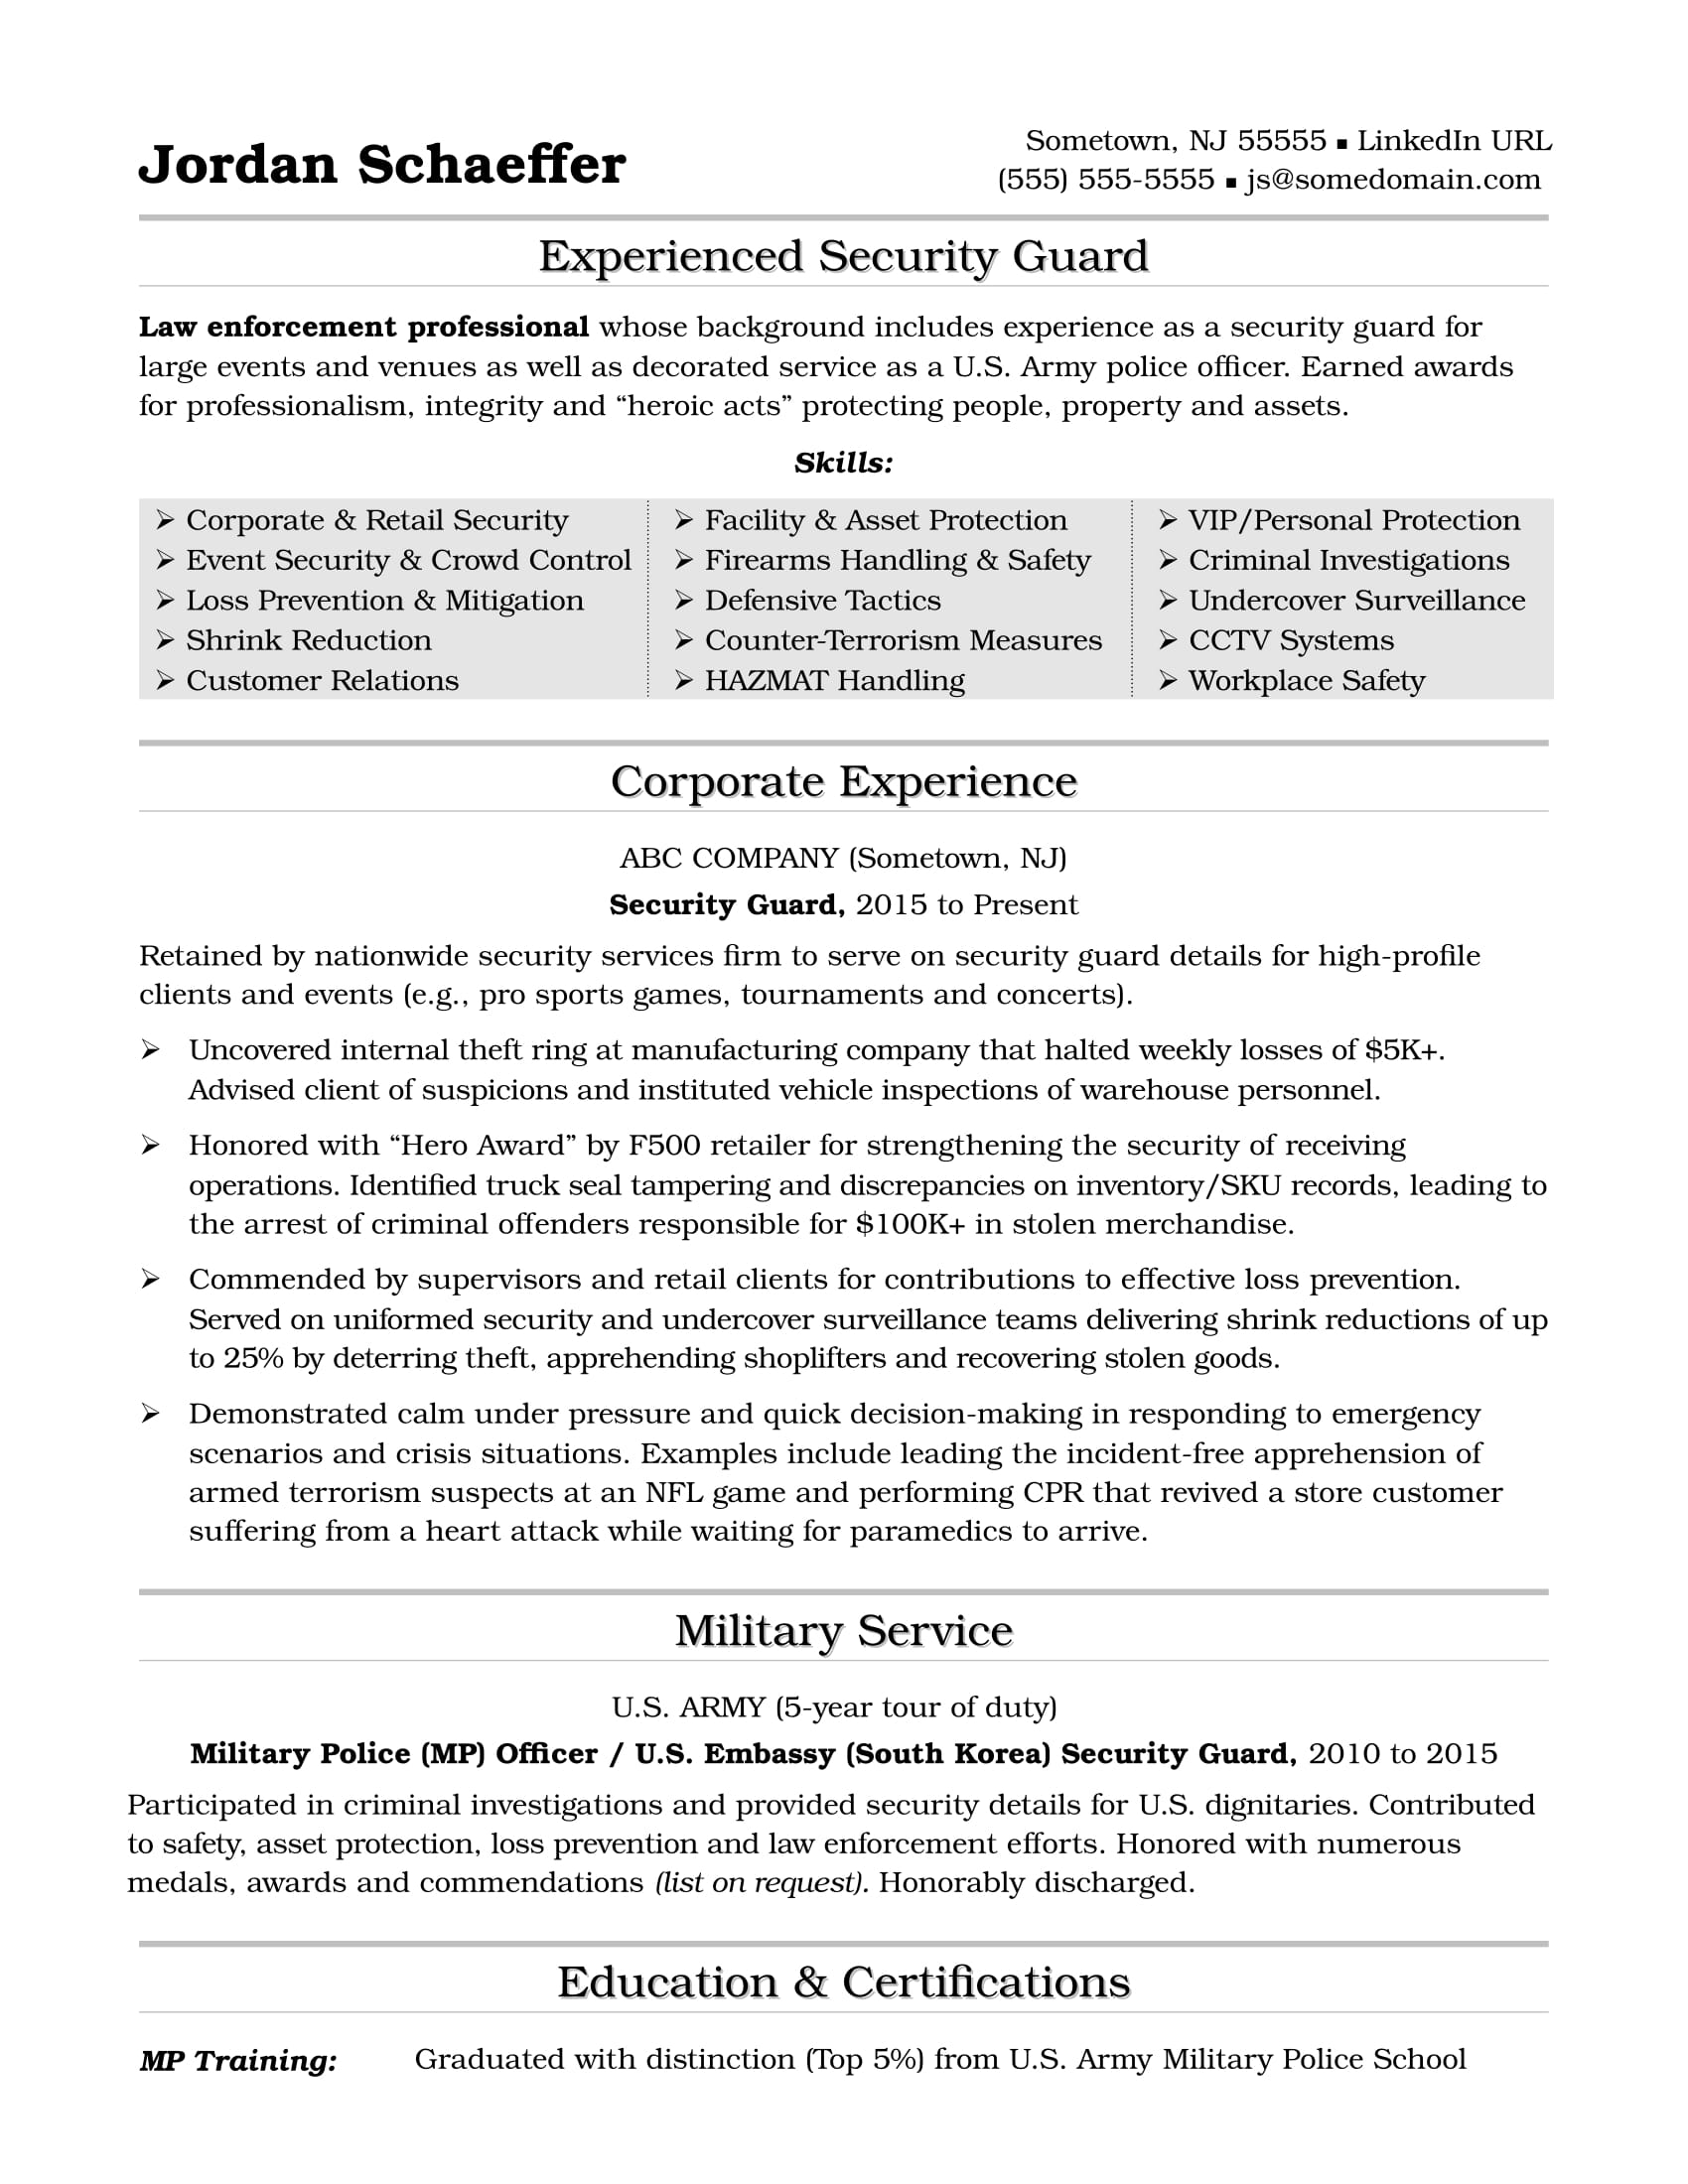 sample resume for security officer